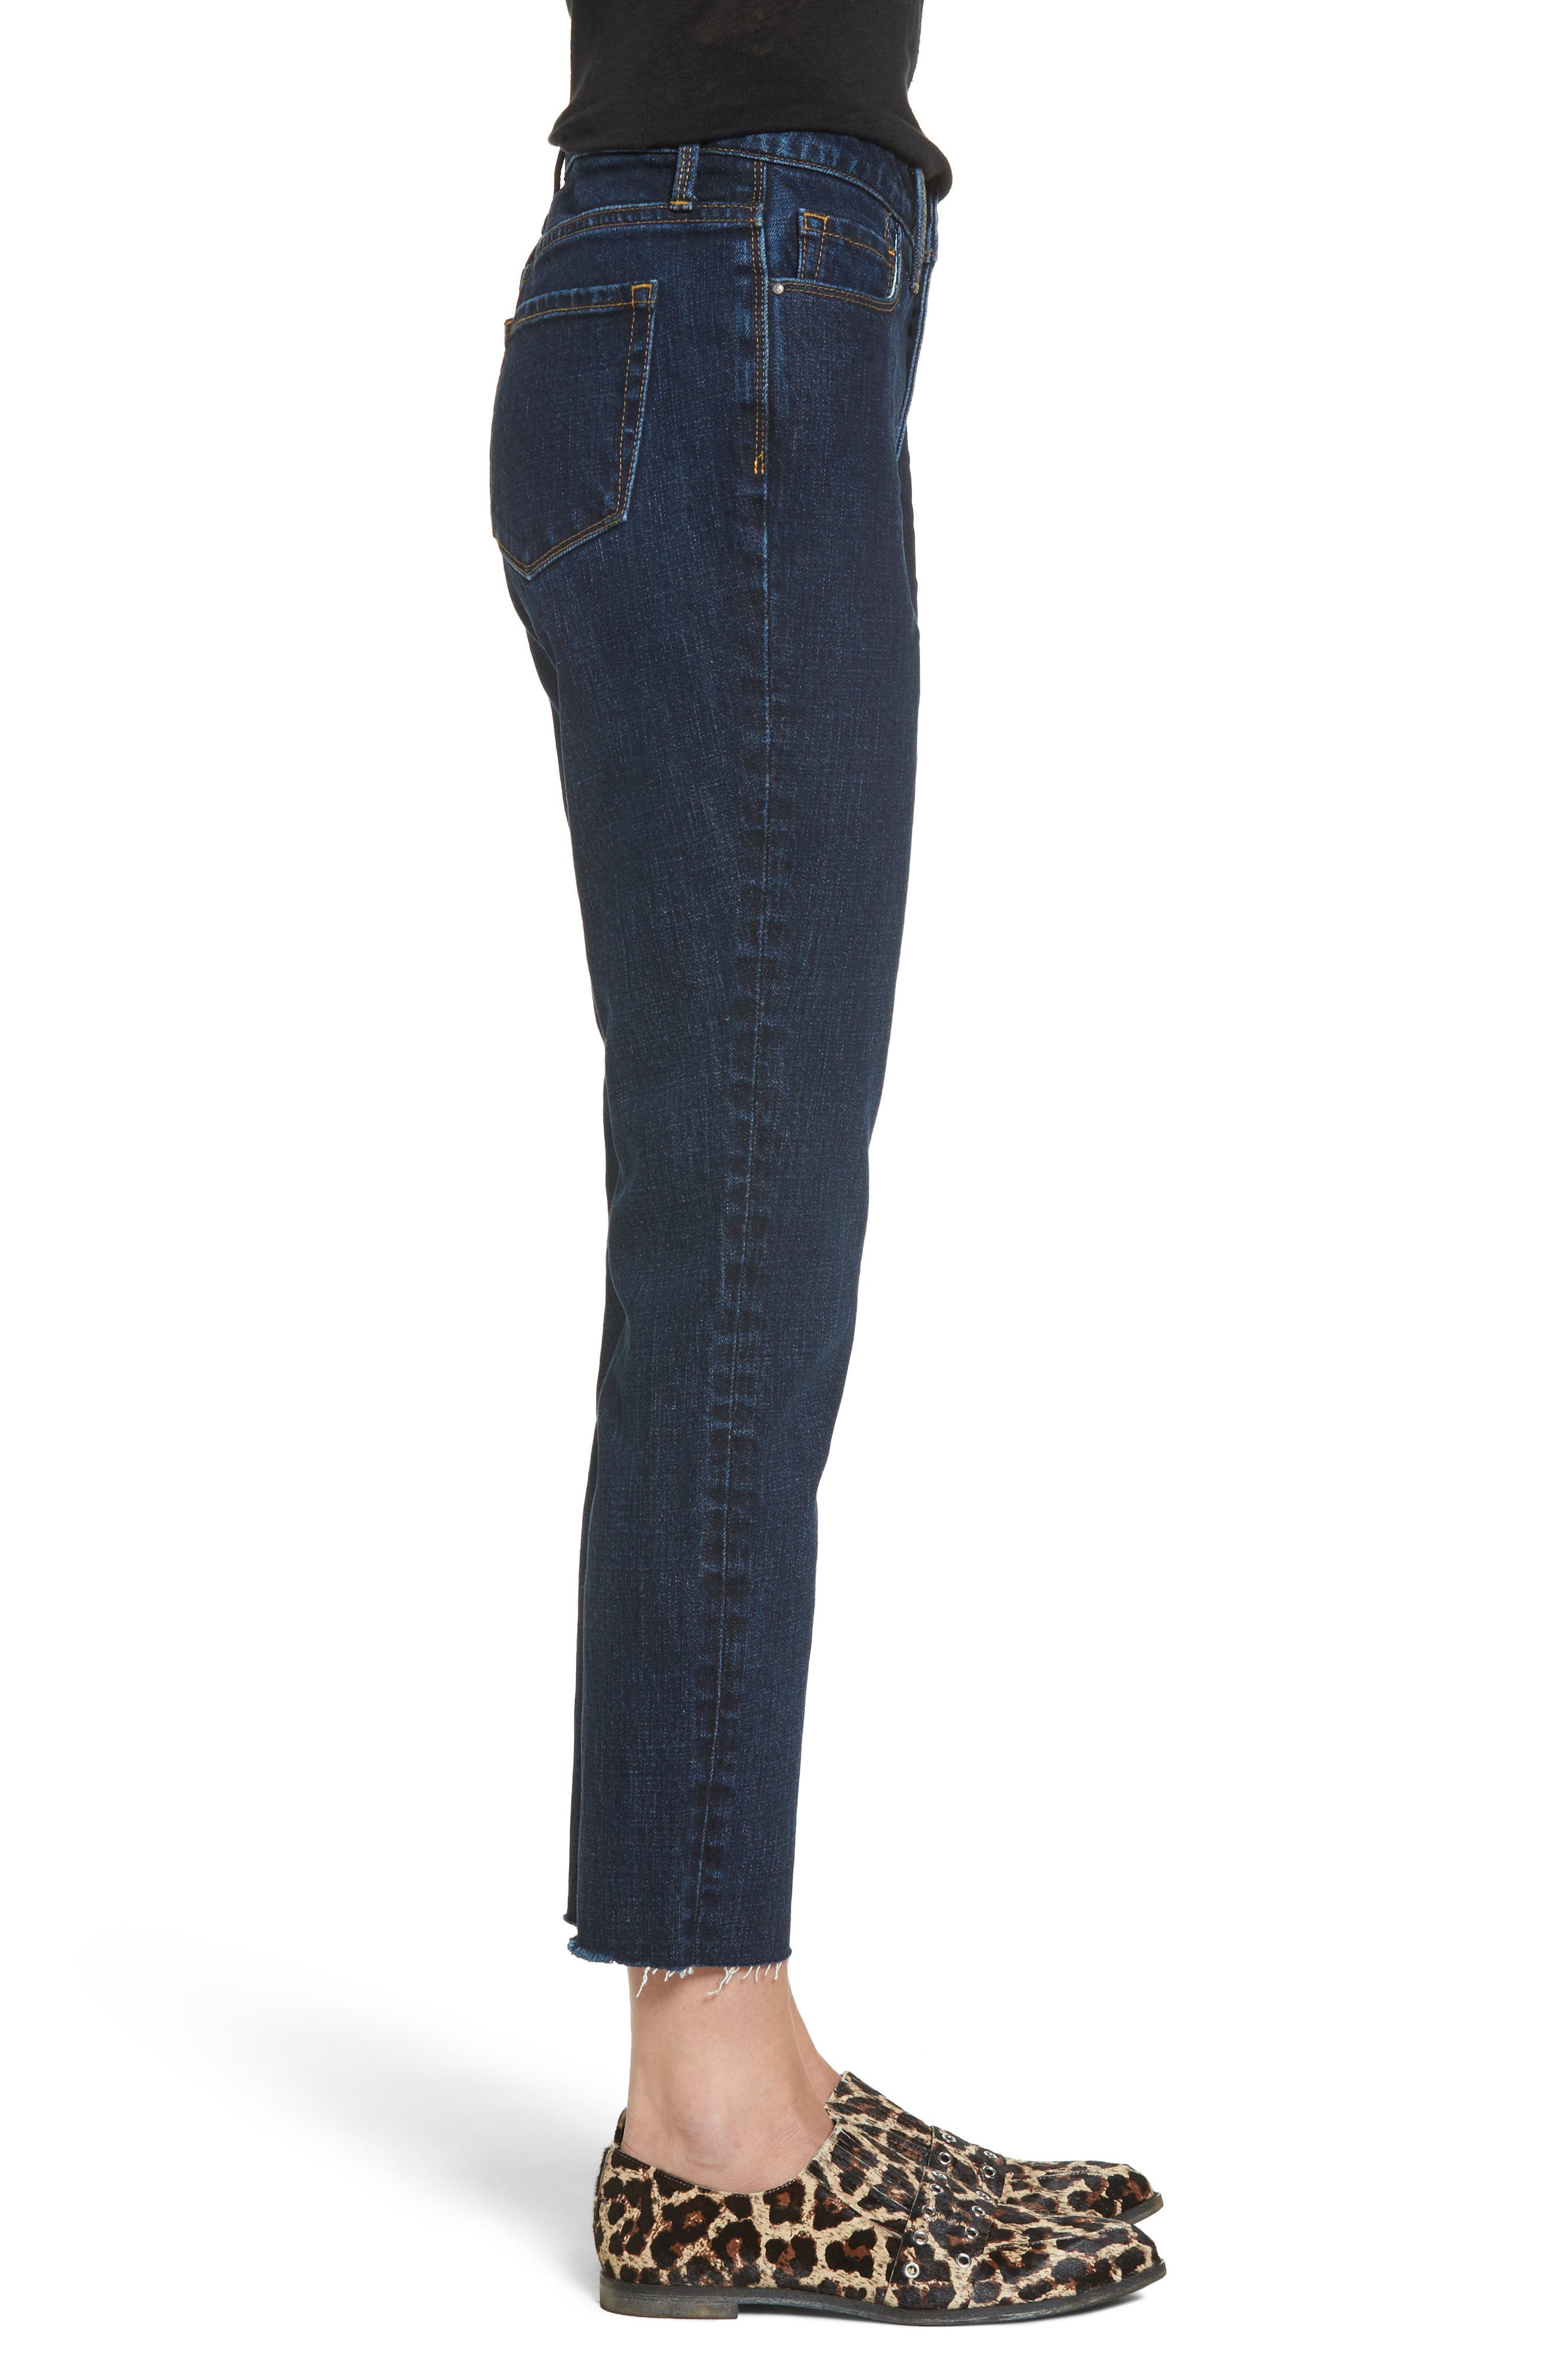 Bond Loose Fit Skinny Ankle Jeans,                             Alternate thumbnail 3, color,